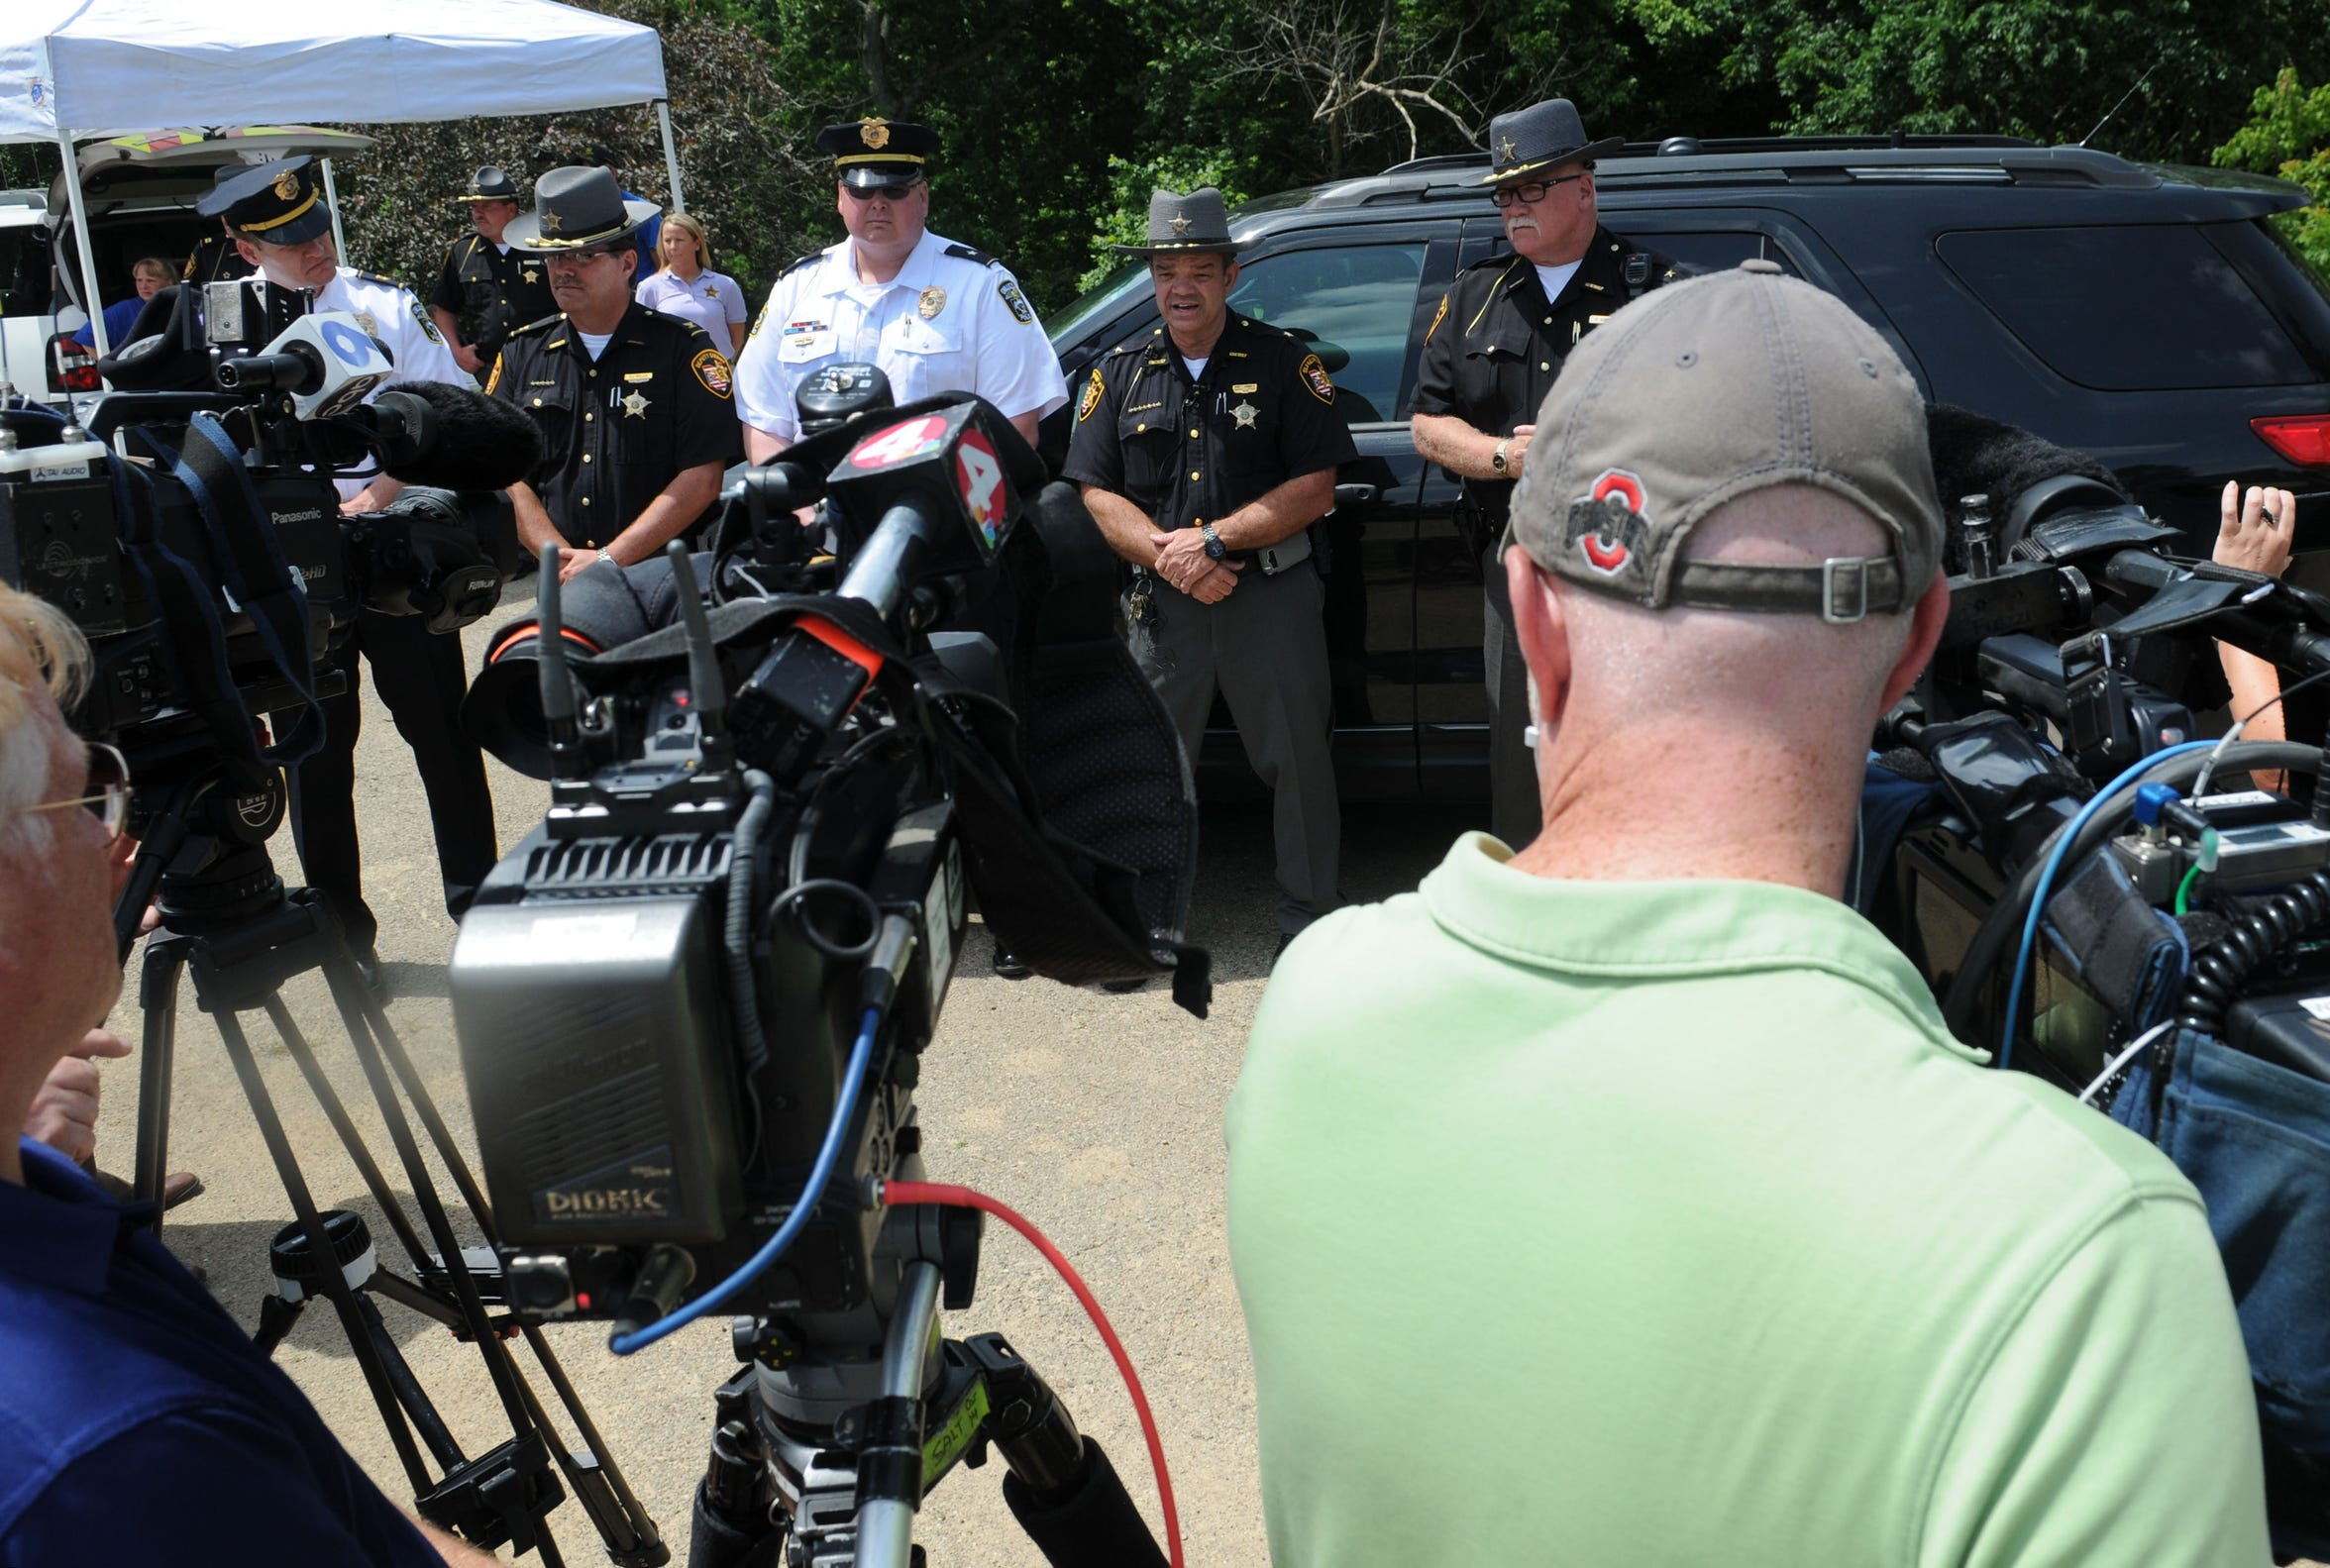 Local officials gather for a news conference after Tiffany Sayre's body was found off of Cave Road in June 2015.